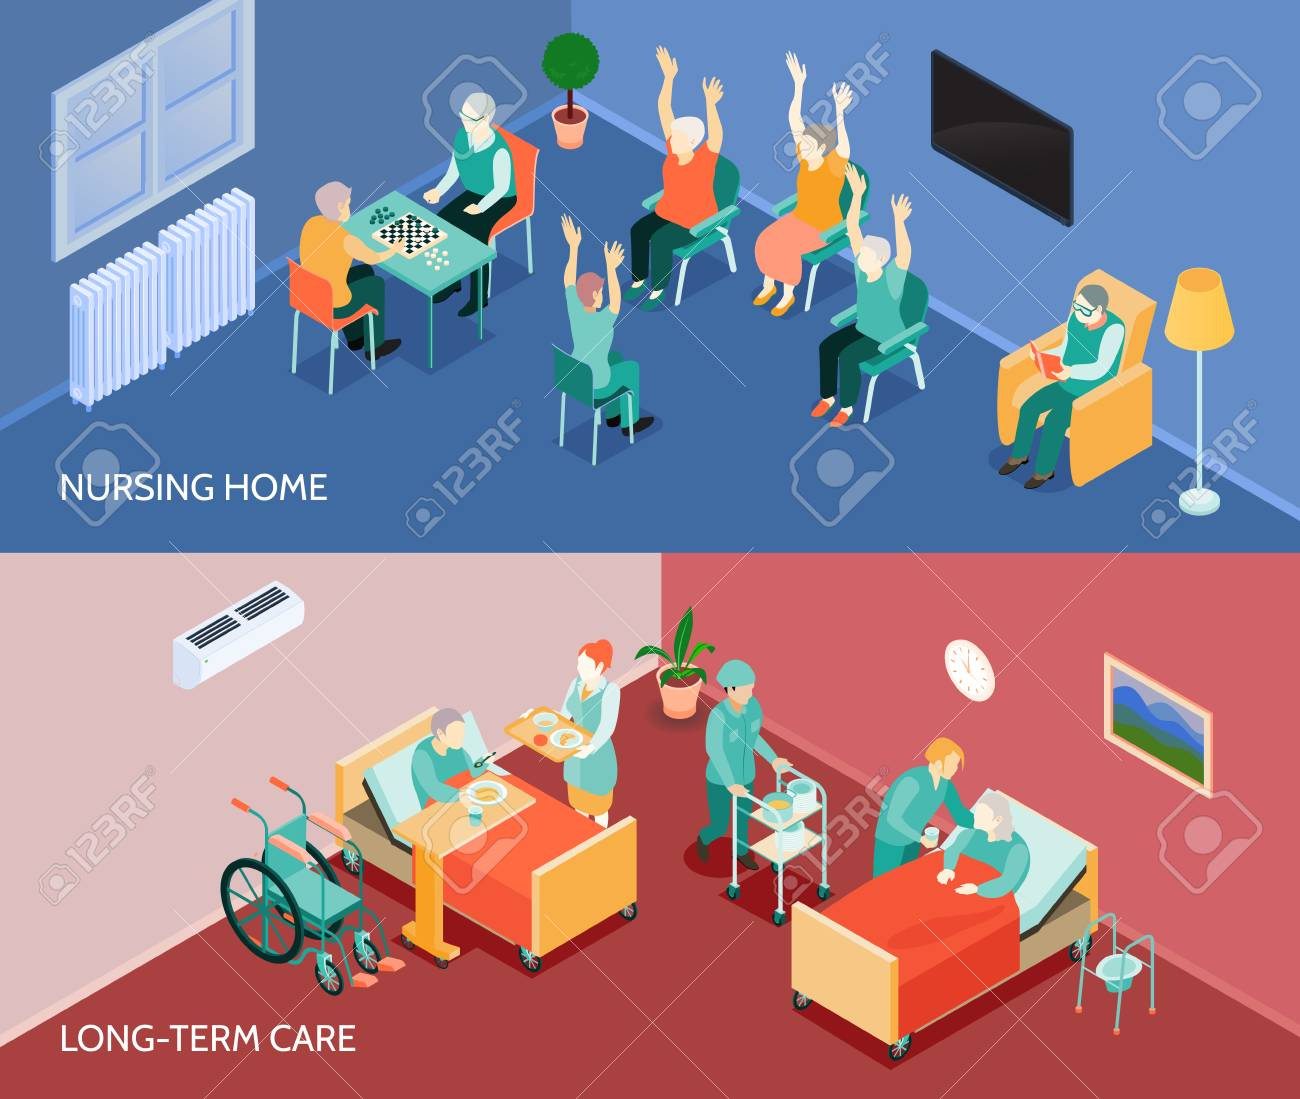 Nursing home long-term care unit 2 horizontal banners with daily activities and feeding assistance isolated vector illustration - 86203462